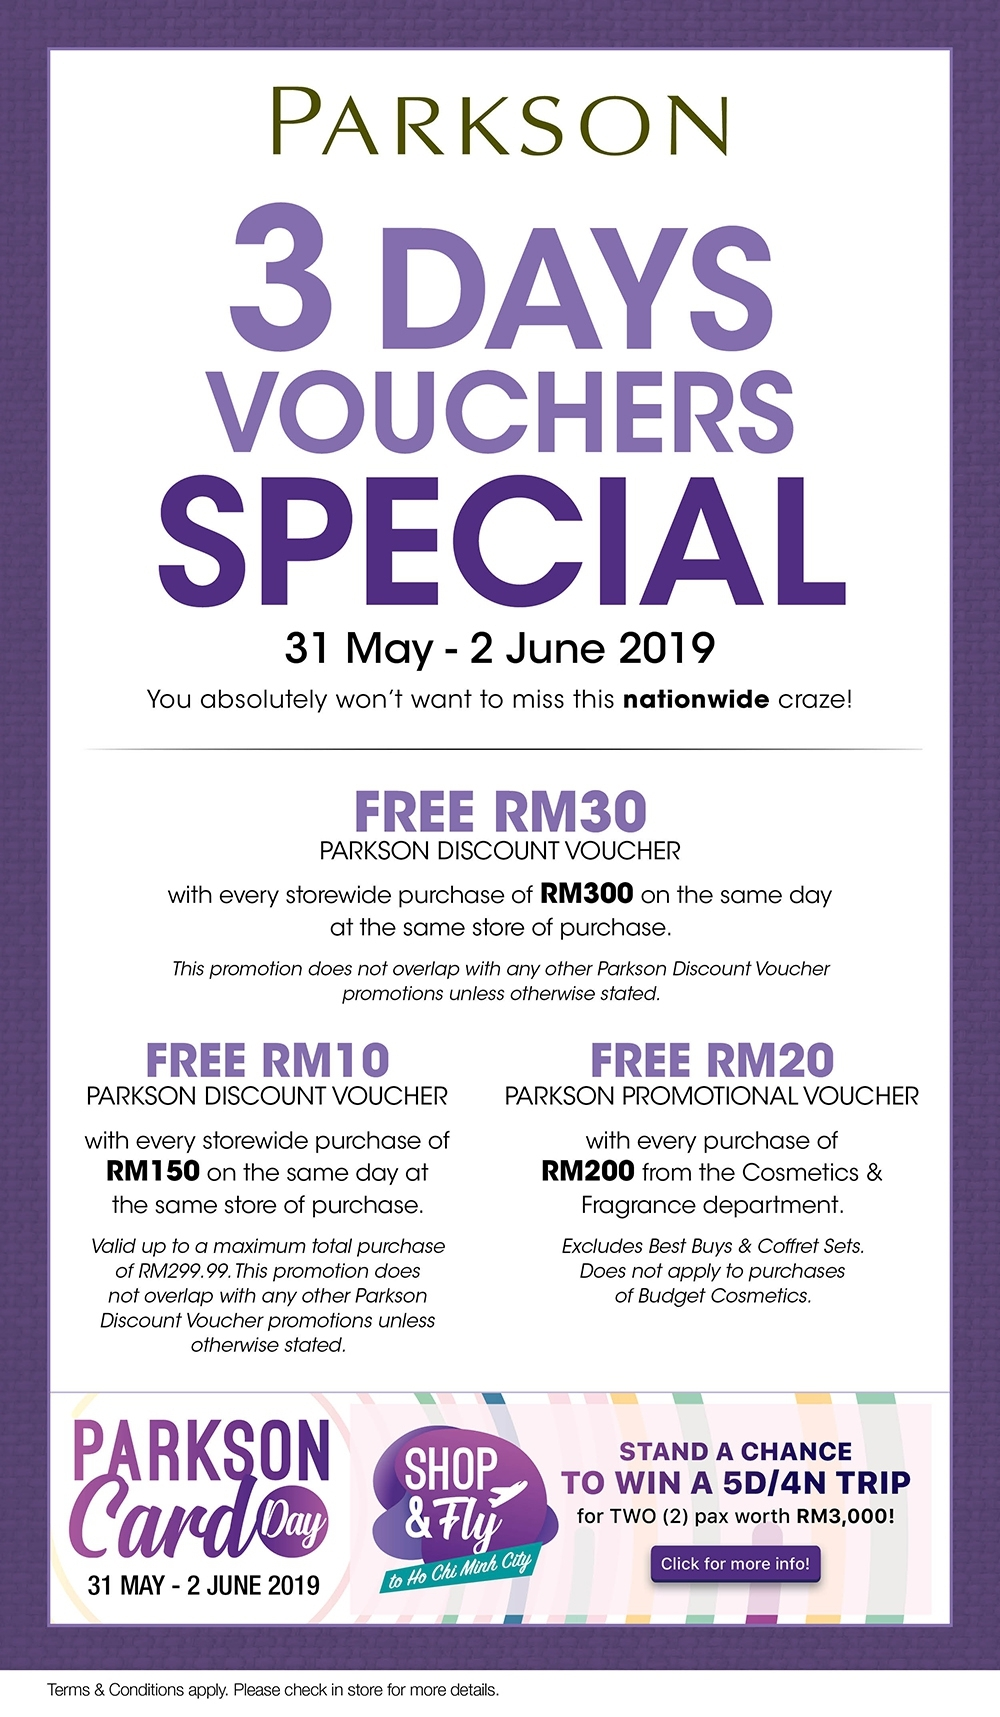 Parkson Card Day - 3 Days Voucher Special